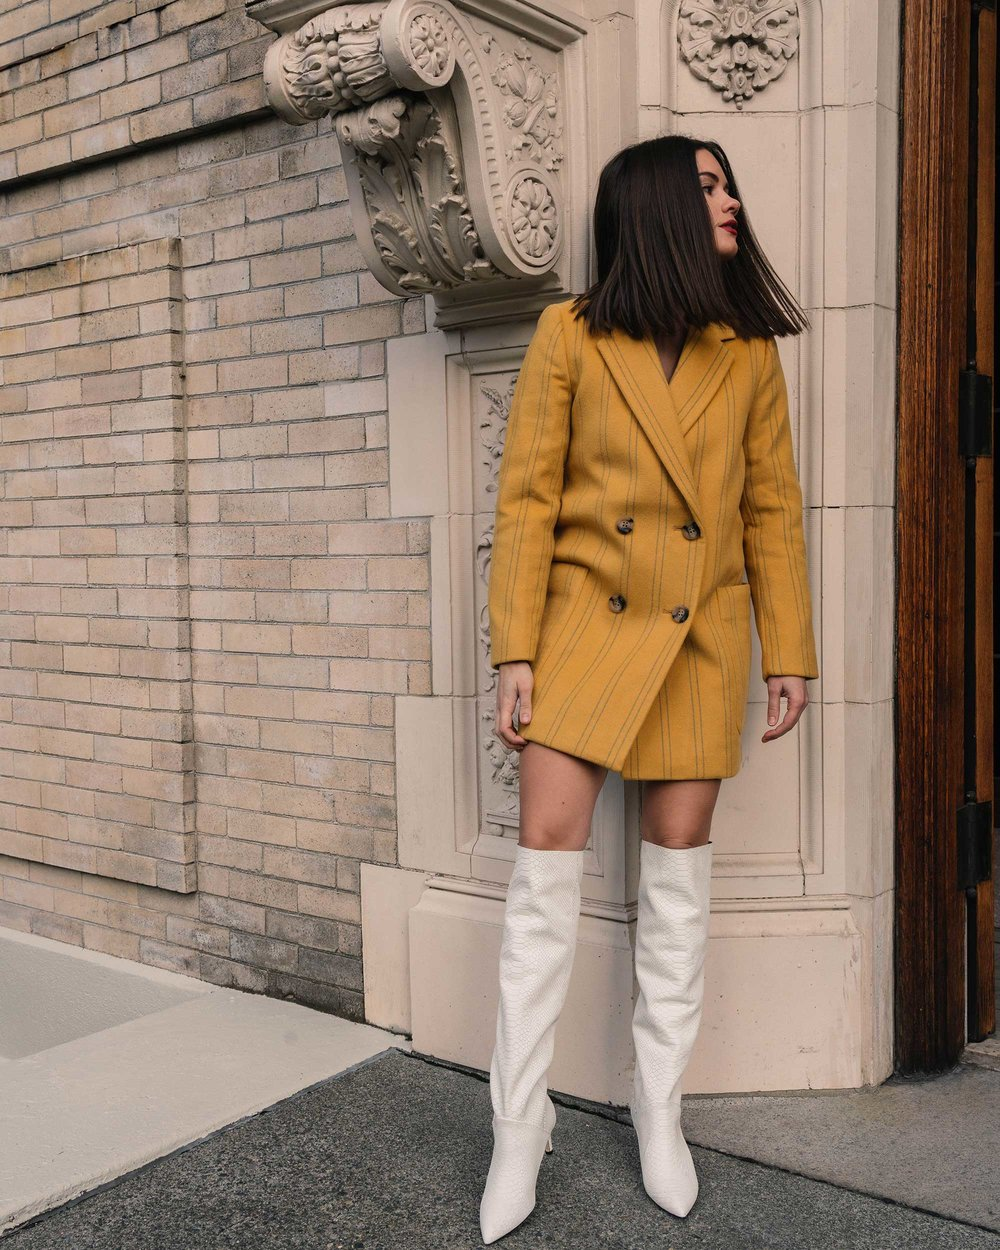 Sarah Butler of Sarah Styles Seattle wears Joie Revet White Snake Print Tall Boots and Madewell Double-Breasted Yellow Coat | @sarahchristine4.jpg